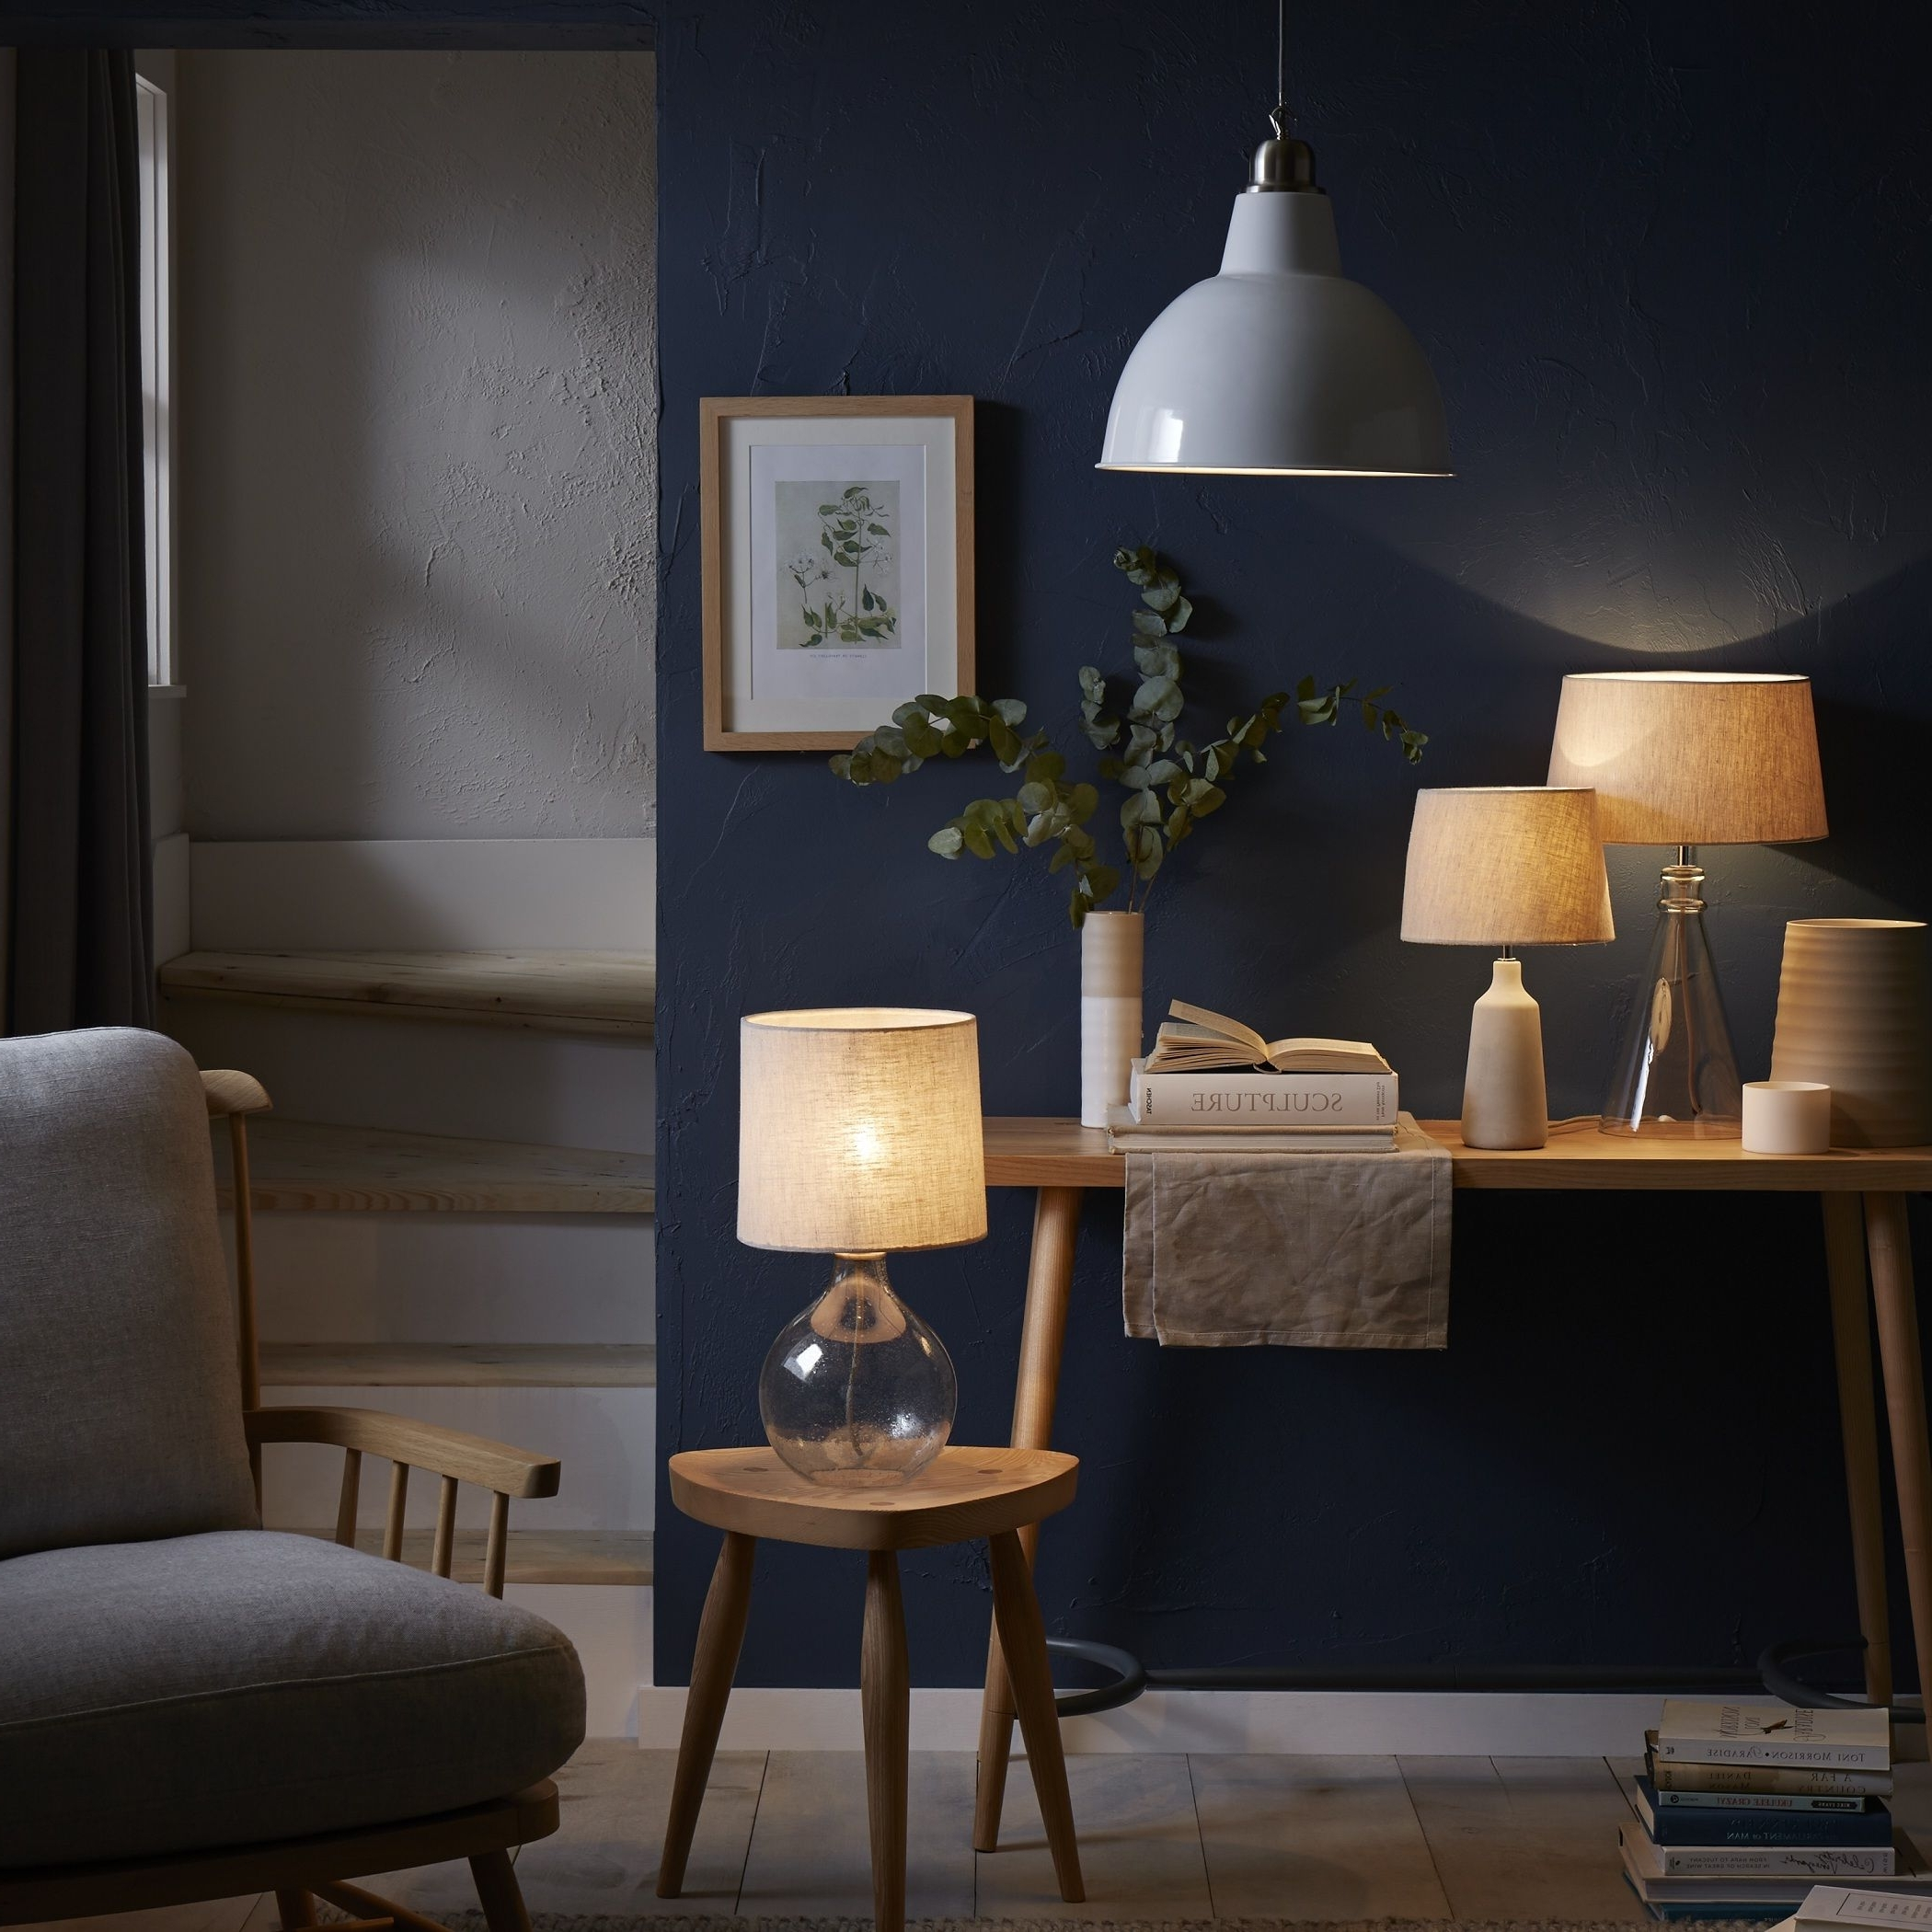 Famous John Lewis Have A Number Of Natural Wood And Glass Lighting Designs With Regard To John Lewis Table Lamps For Living Room (View 9 of 15)